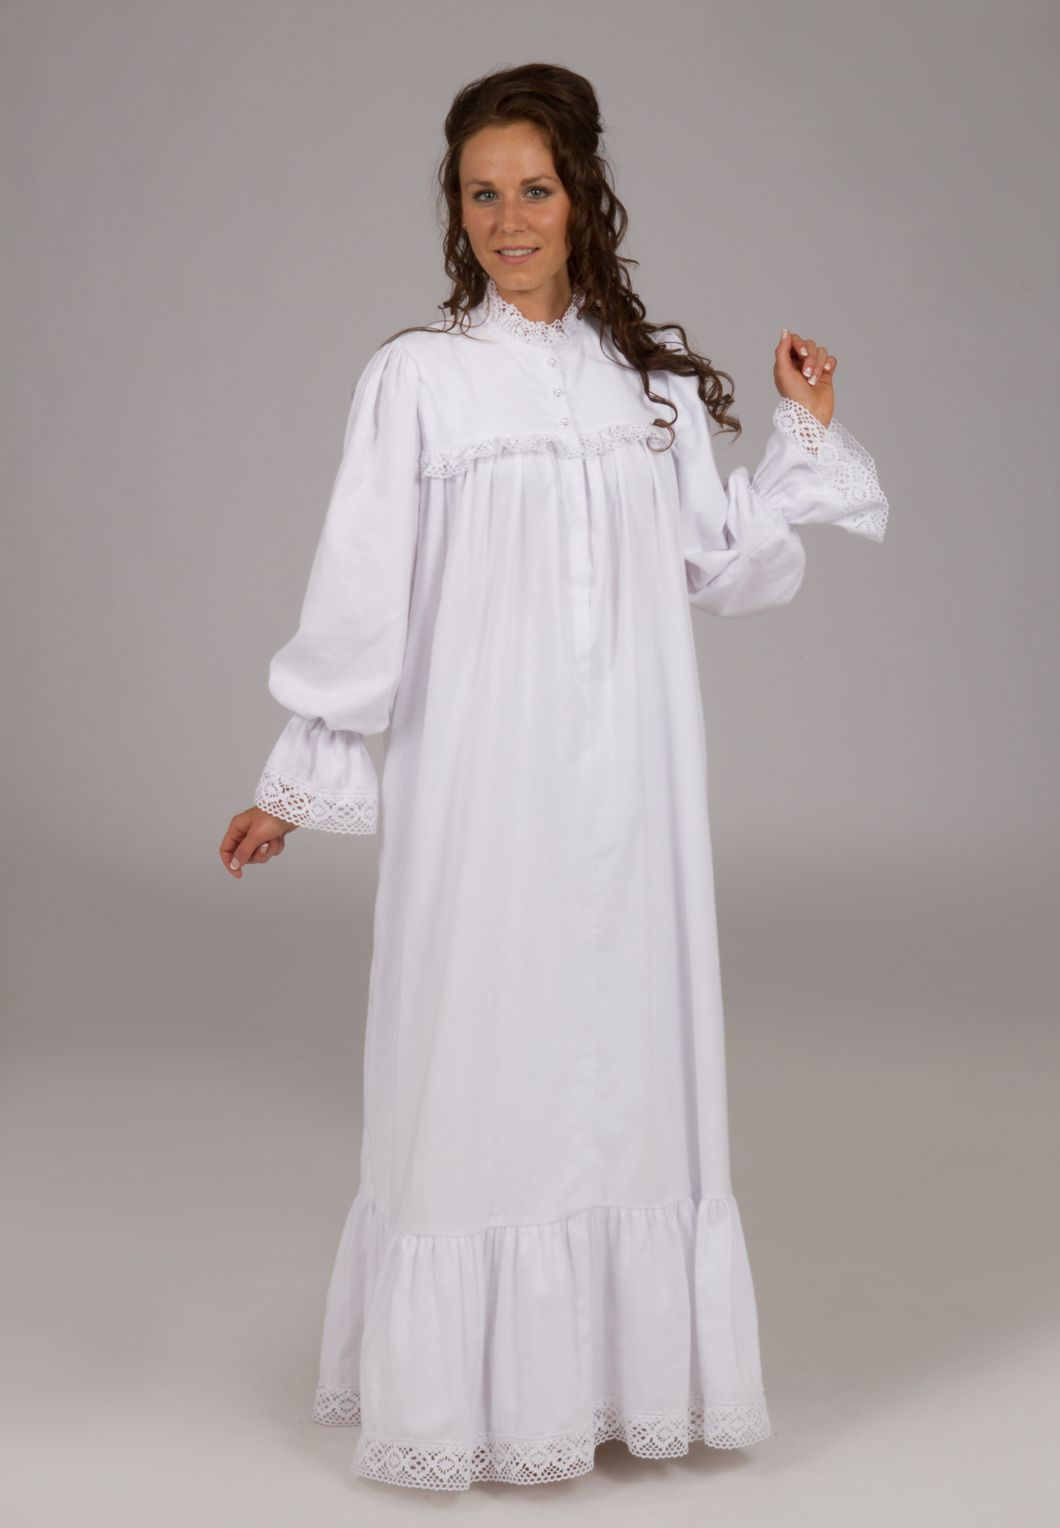 Victorian Flannel Nightgown  Pinterest  Nightgown Nighties and